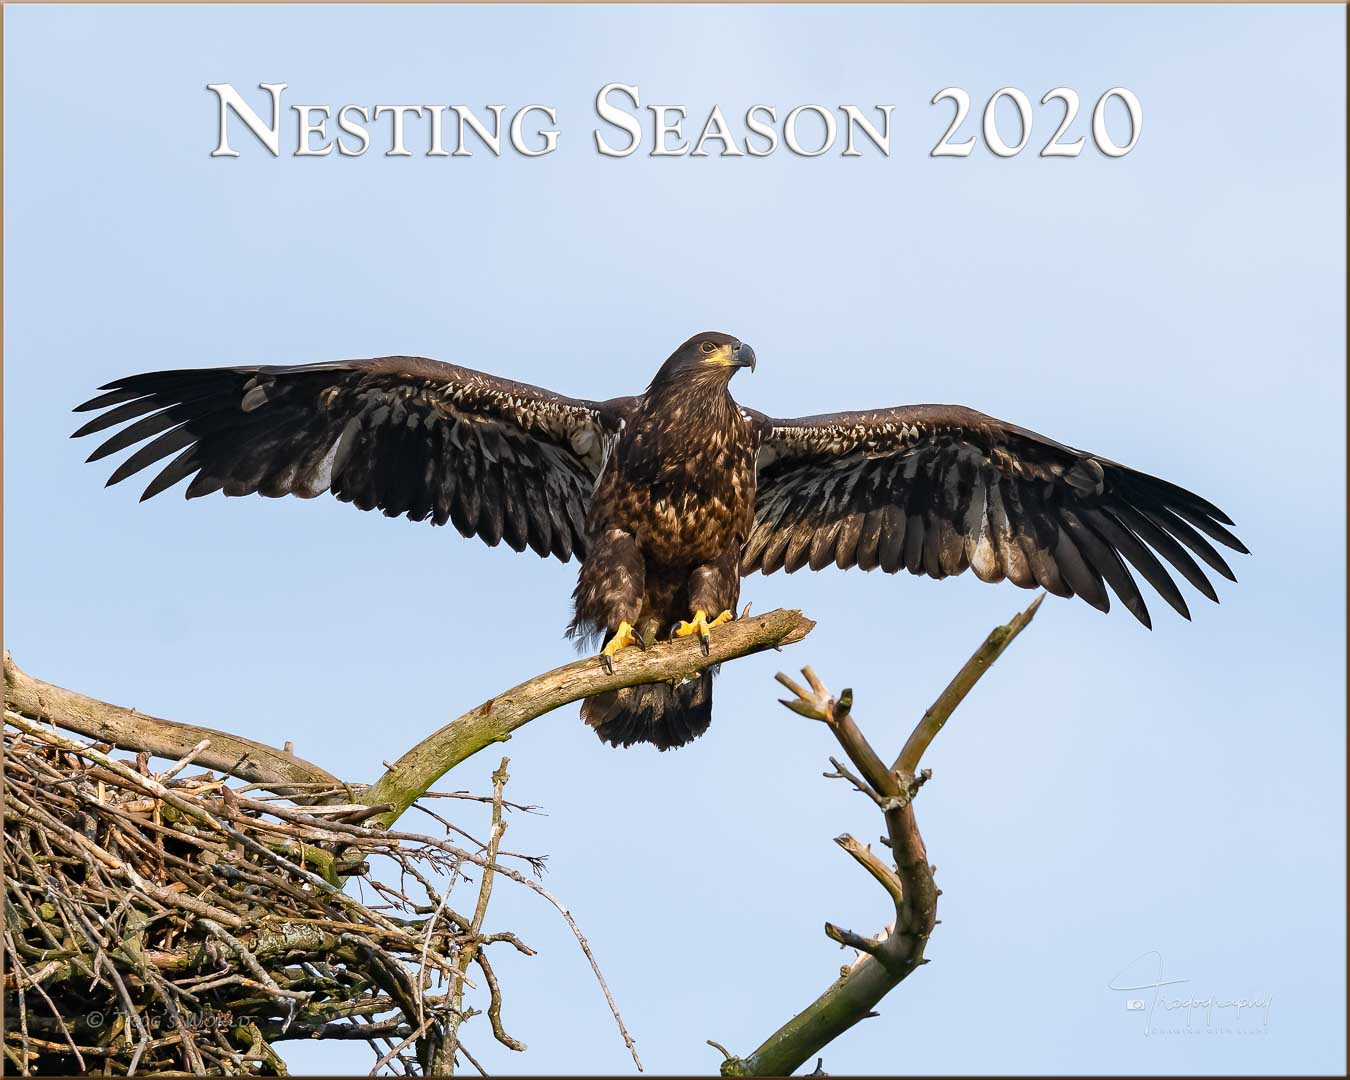 Juvenile Eagle spreading its wings on a branch